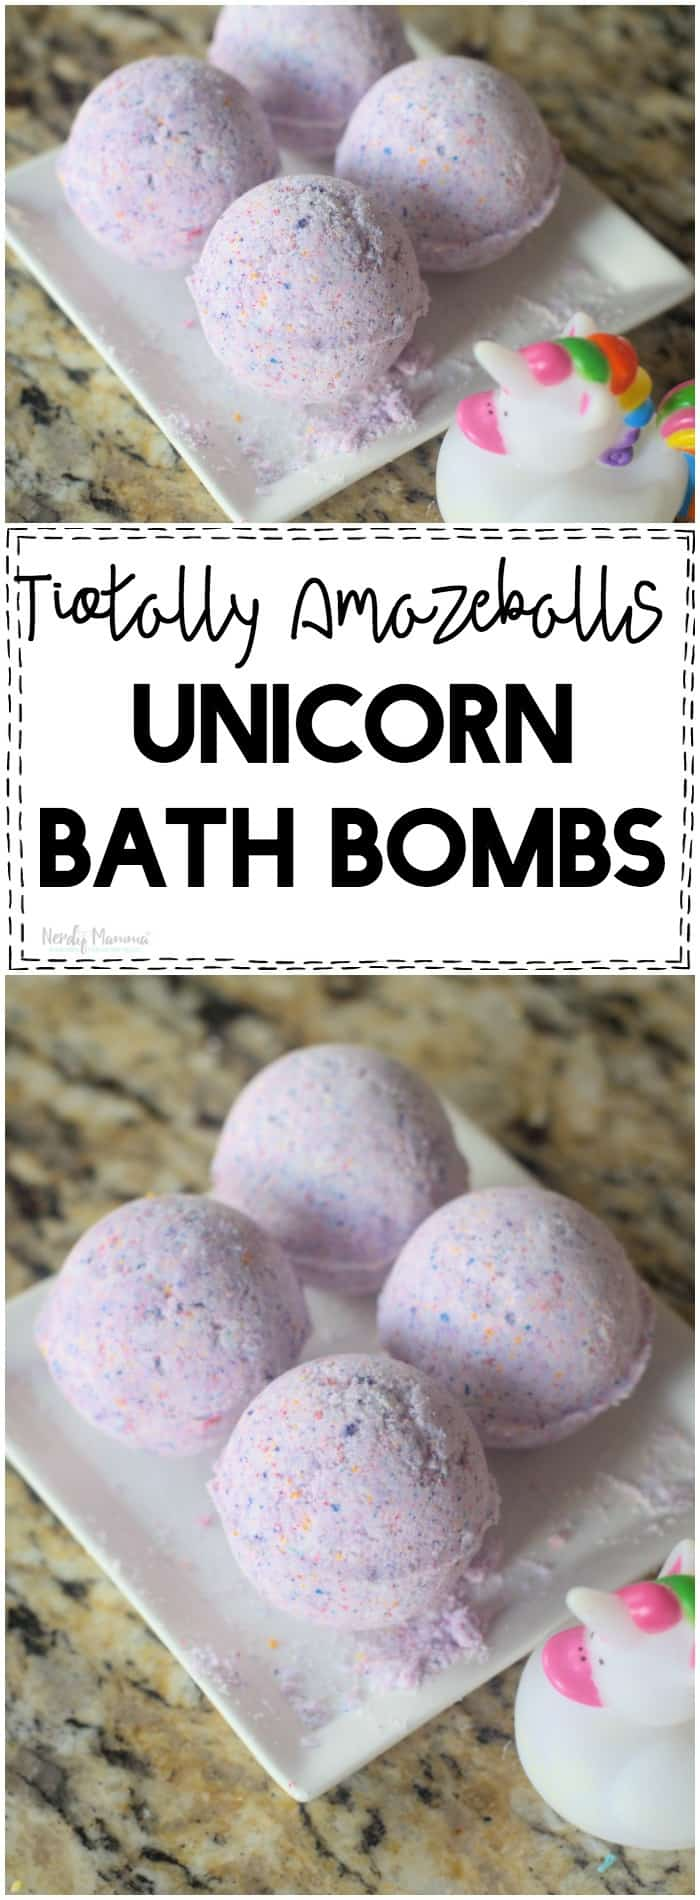 OMG these unicorn bath bombs are AMAZEBALLS!